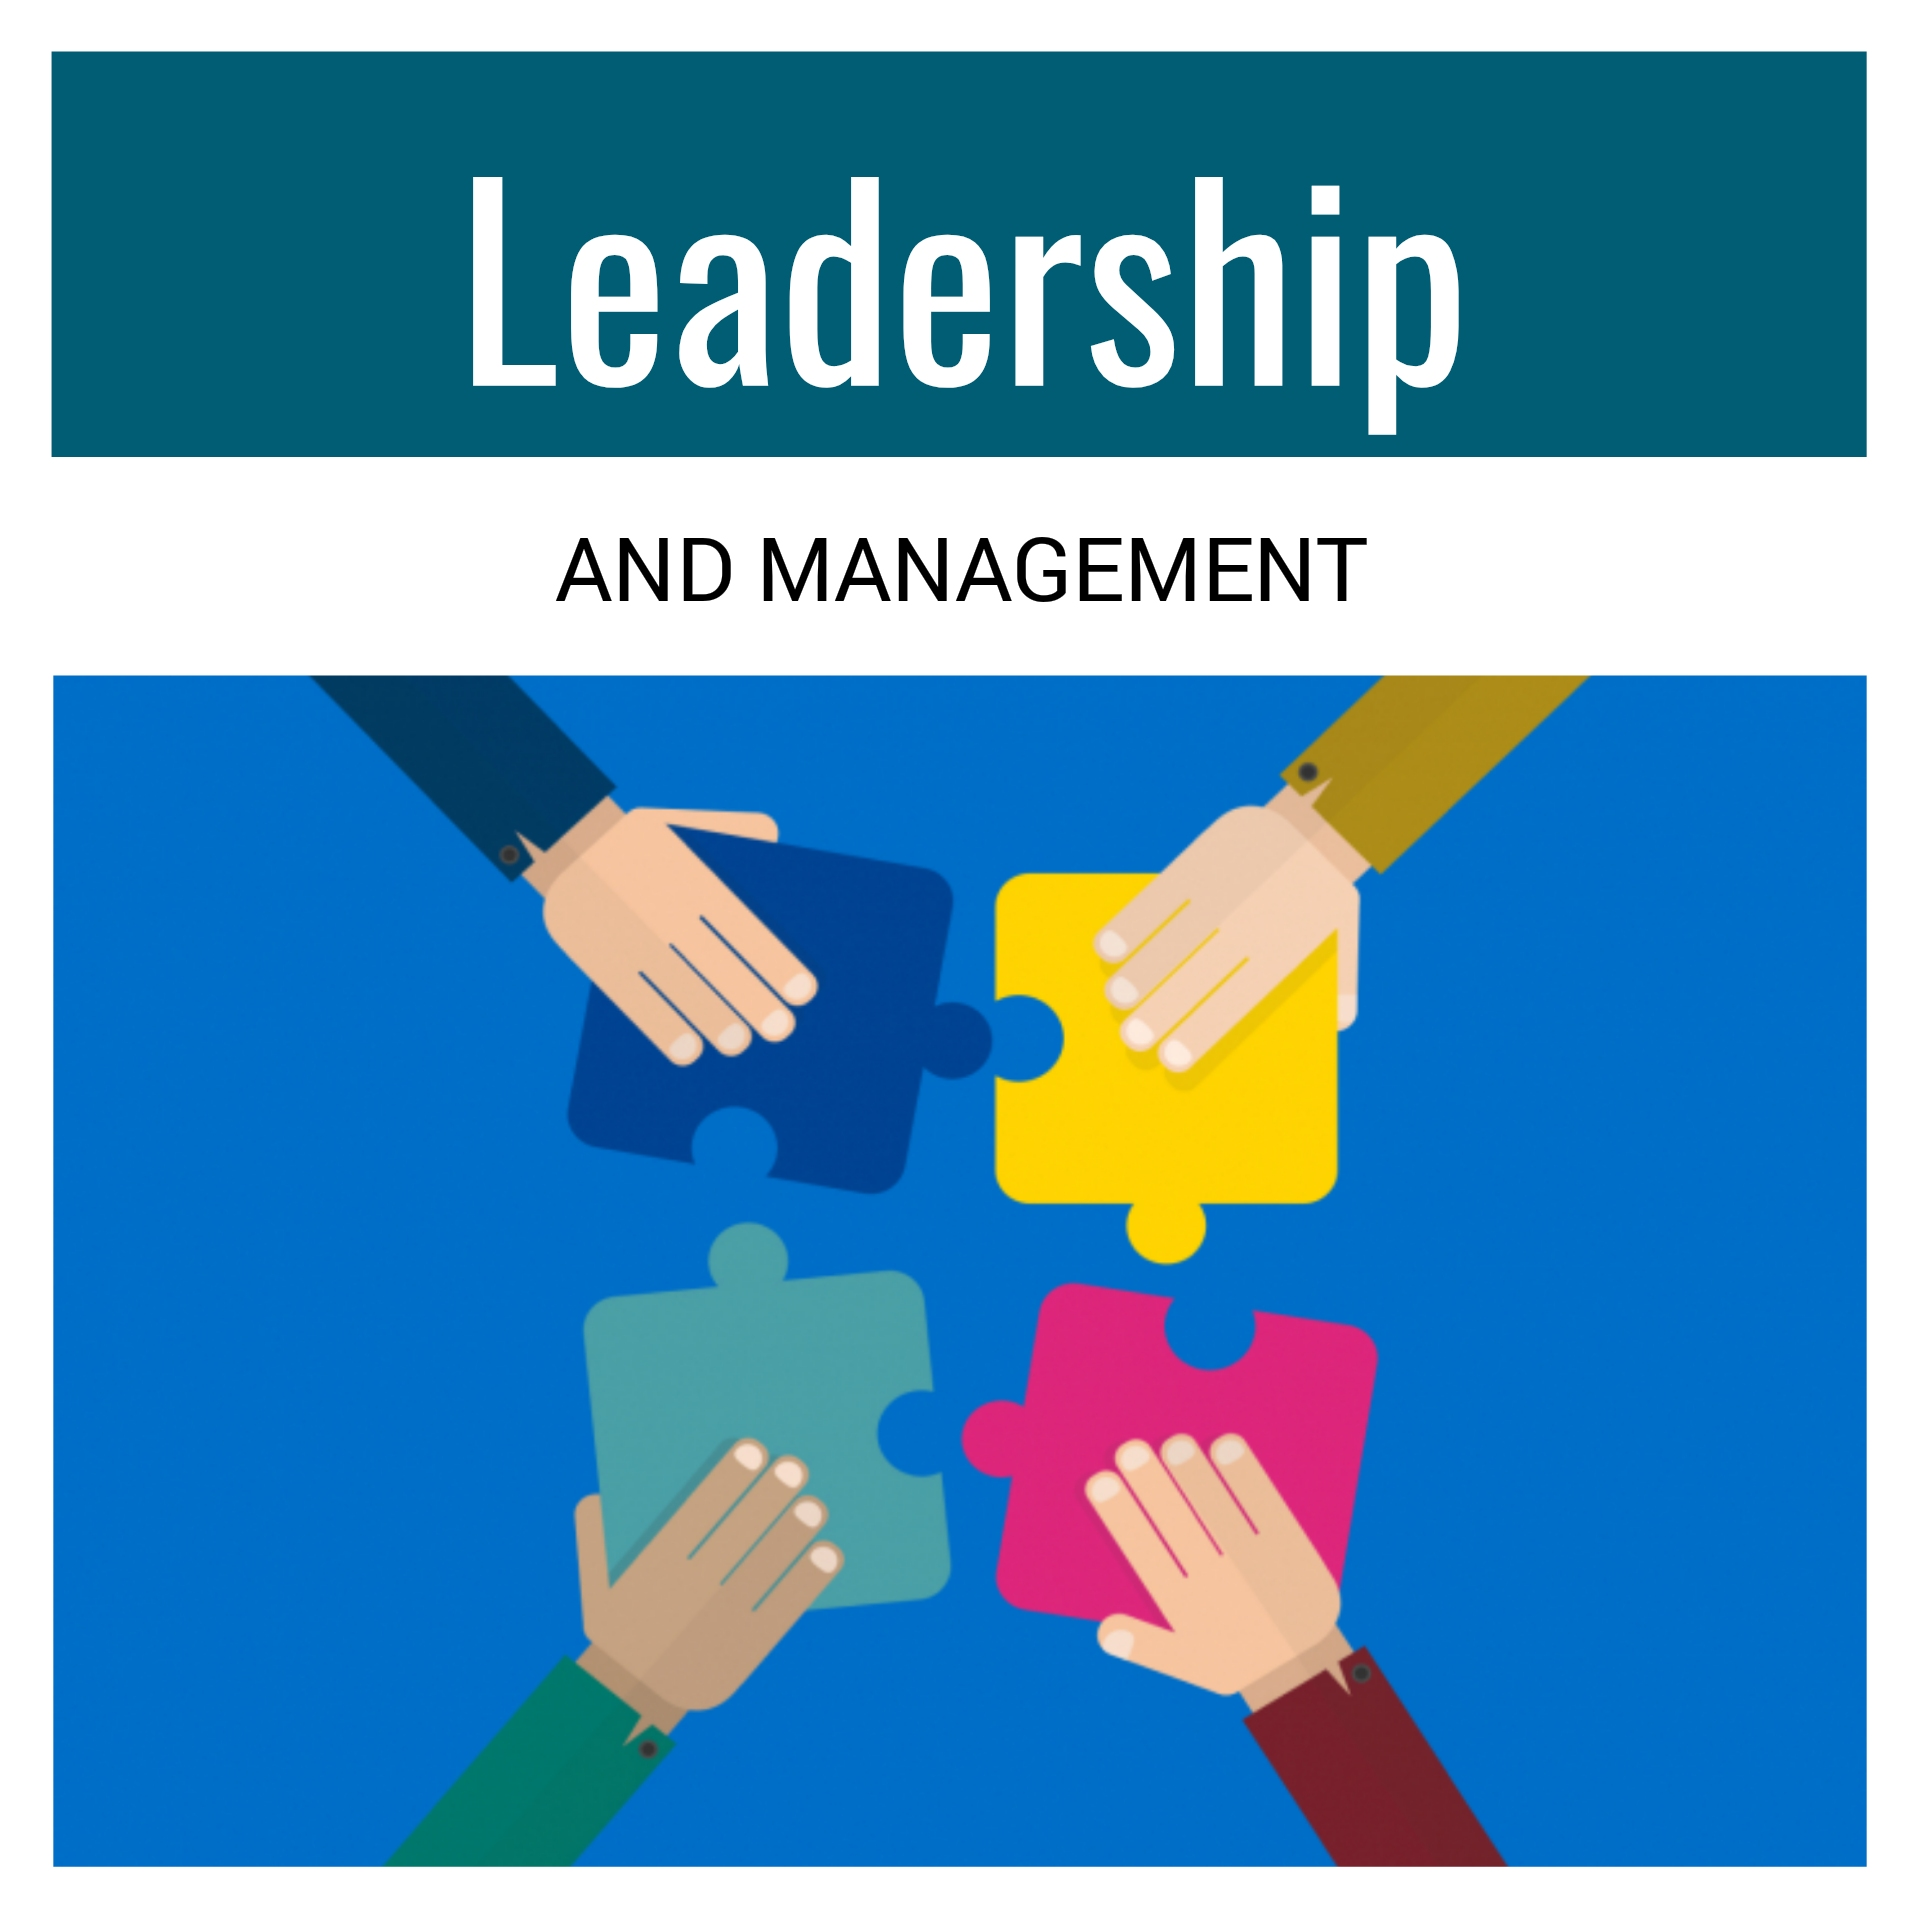 Leadership And Management 5A 2021 - 2022